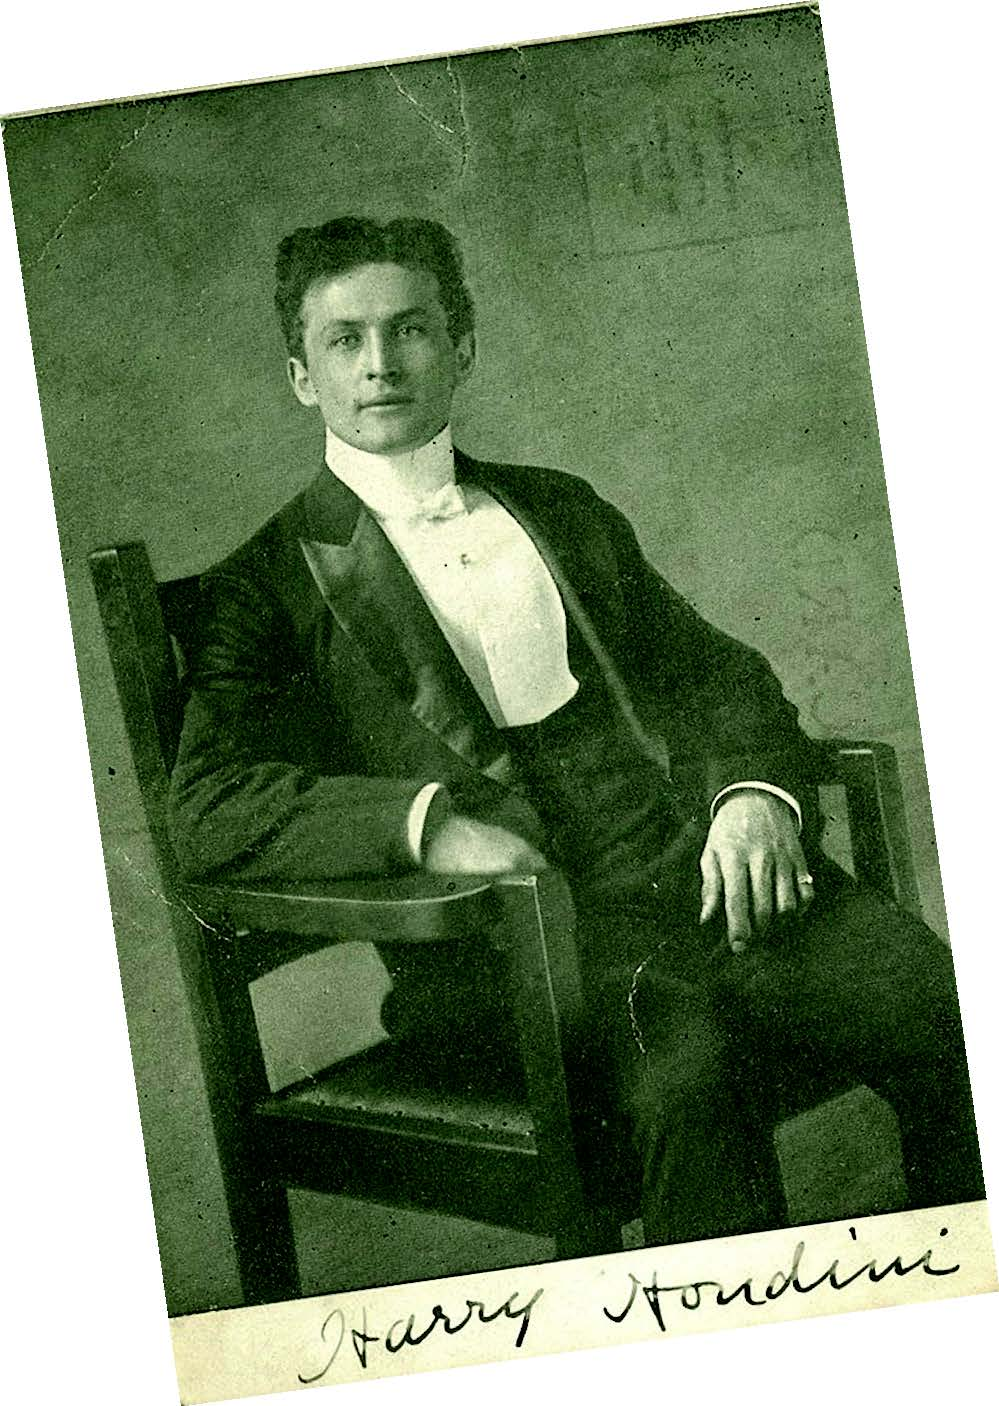 Images of Harry Houdini are popular with postcard collectors